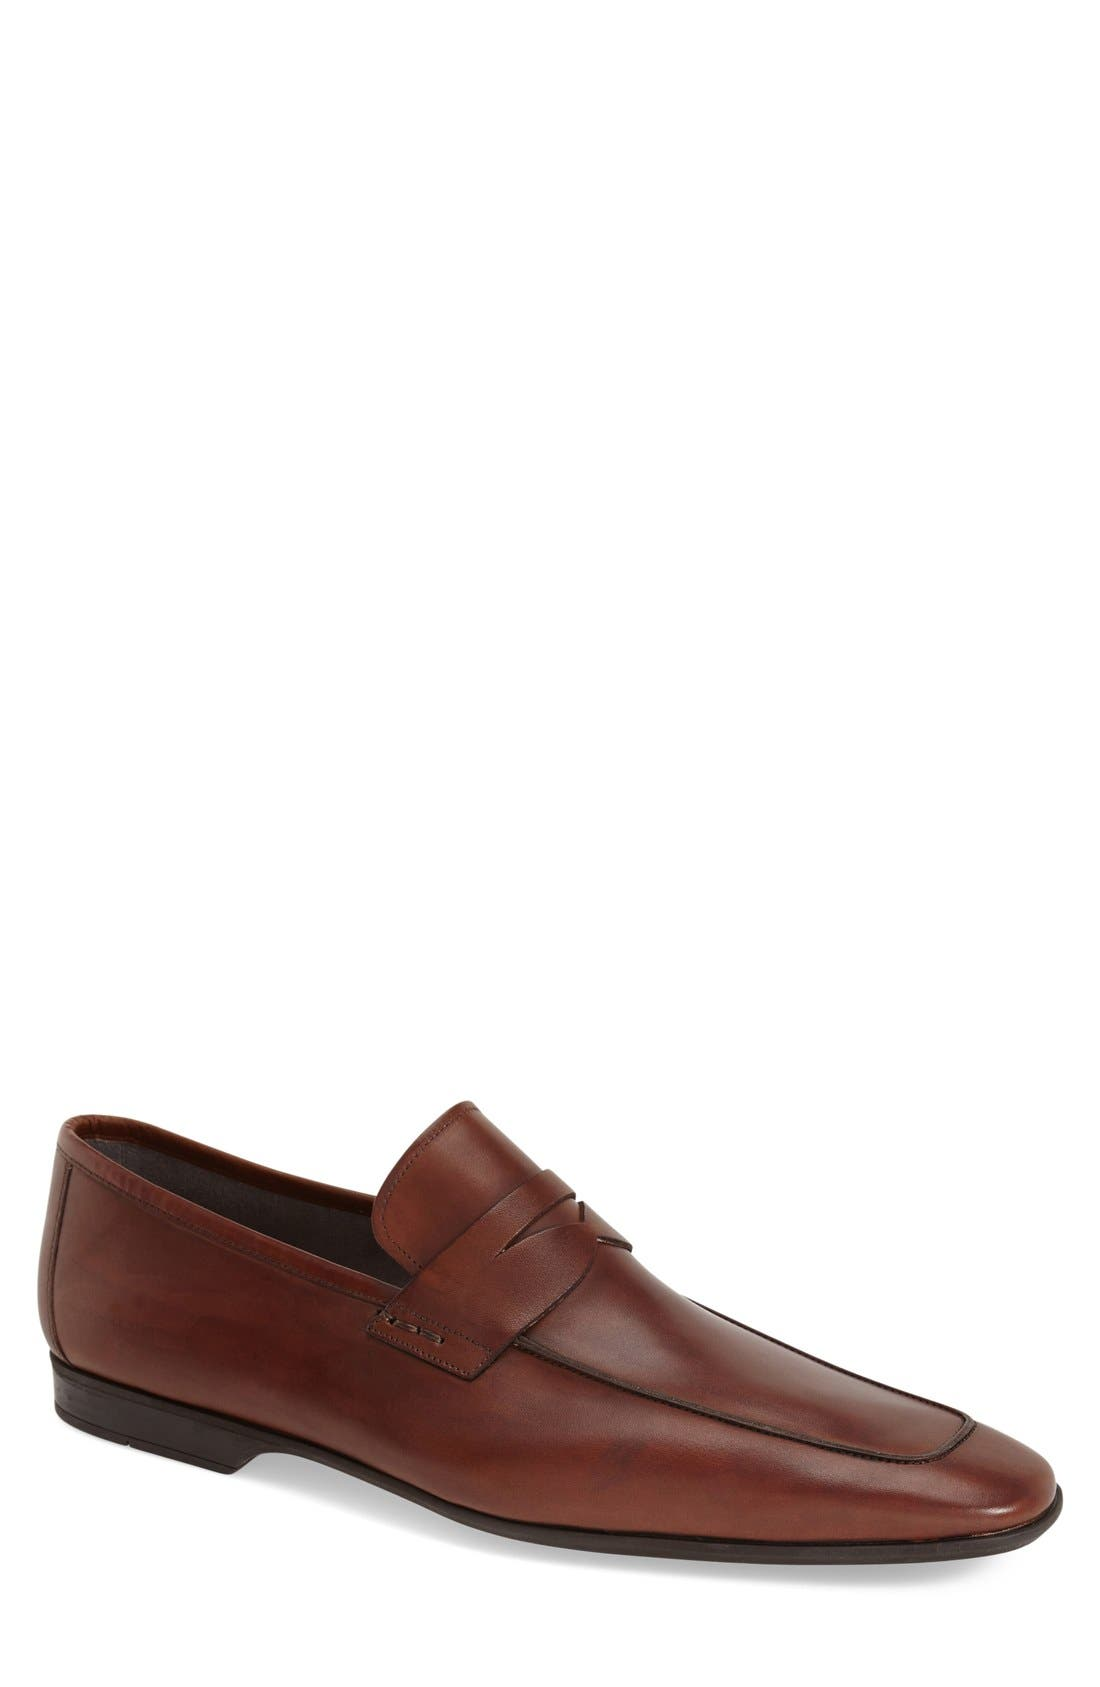 Main Image - Magnanni 'Ramiro' Penny Loafer (Men)